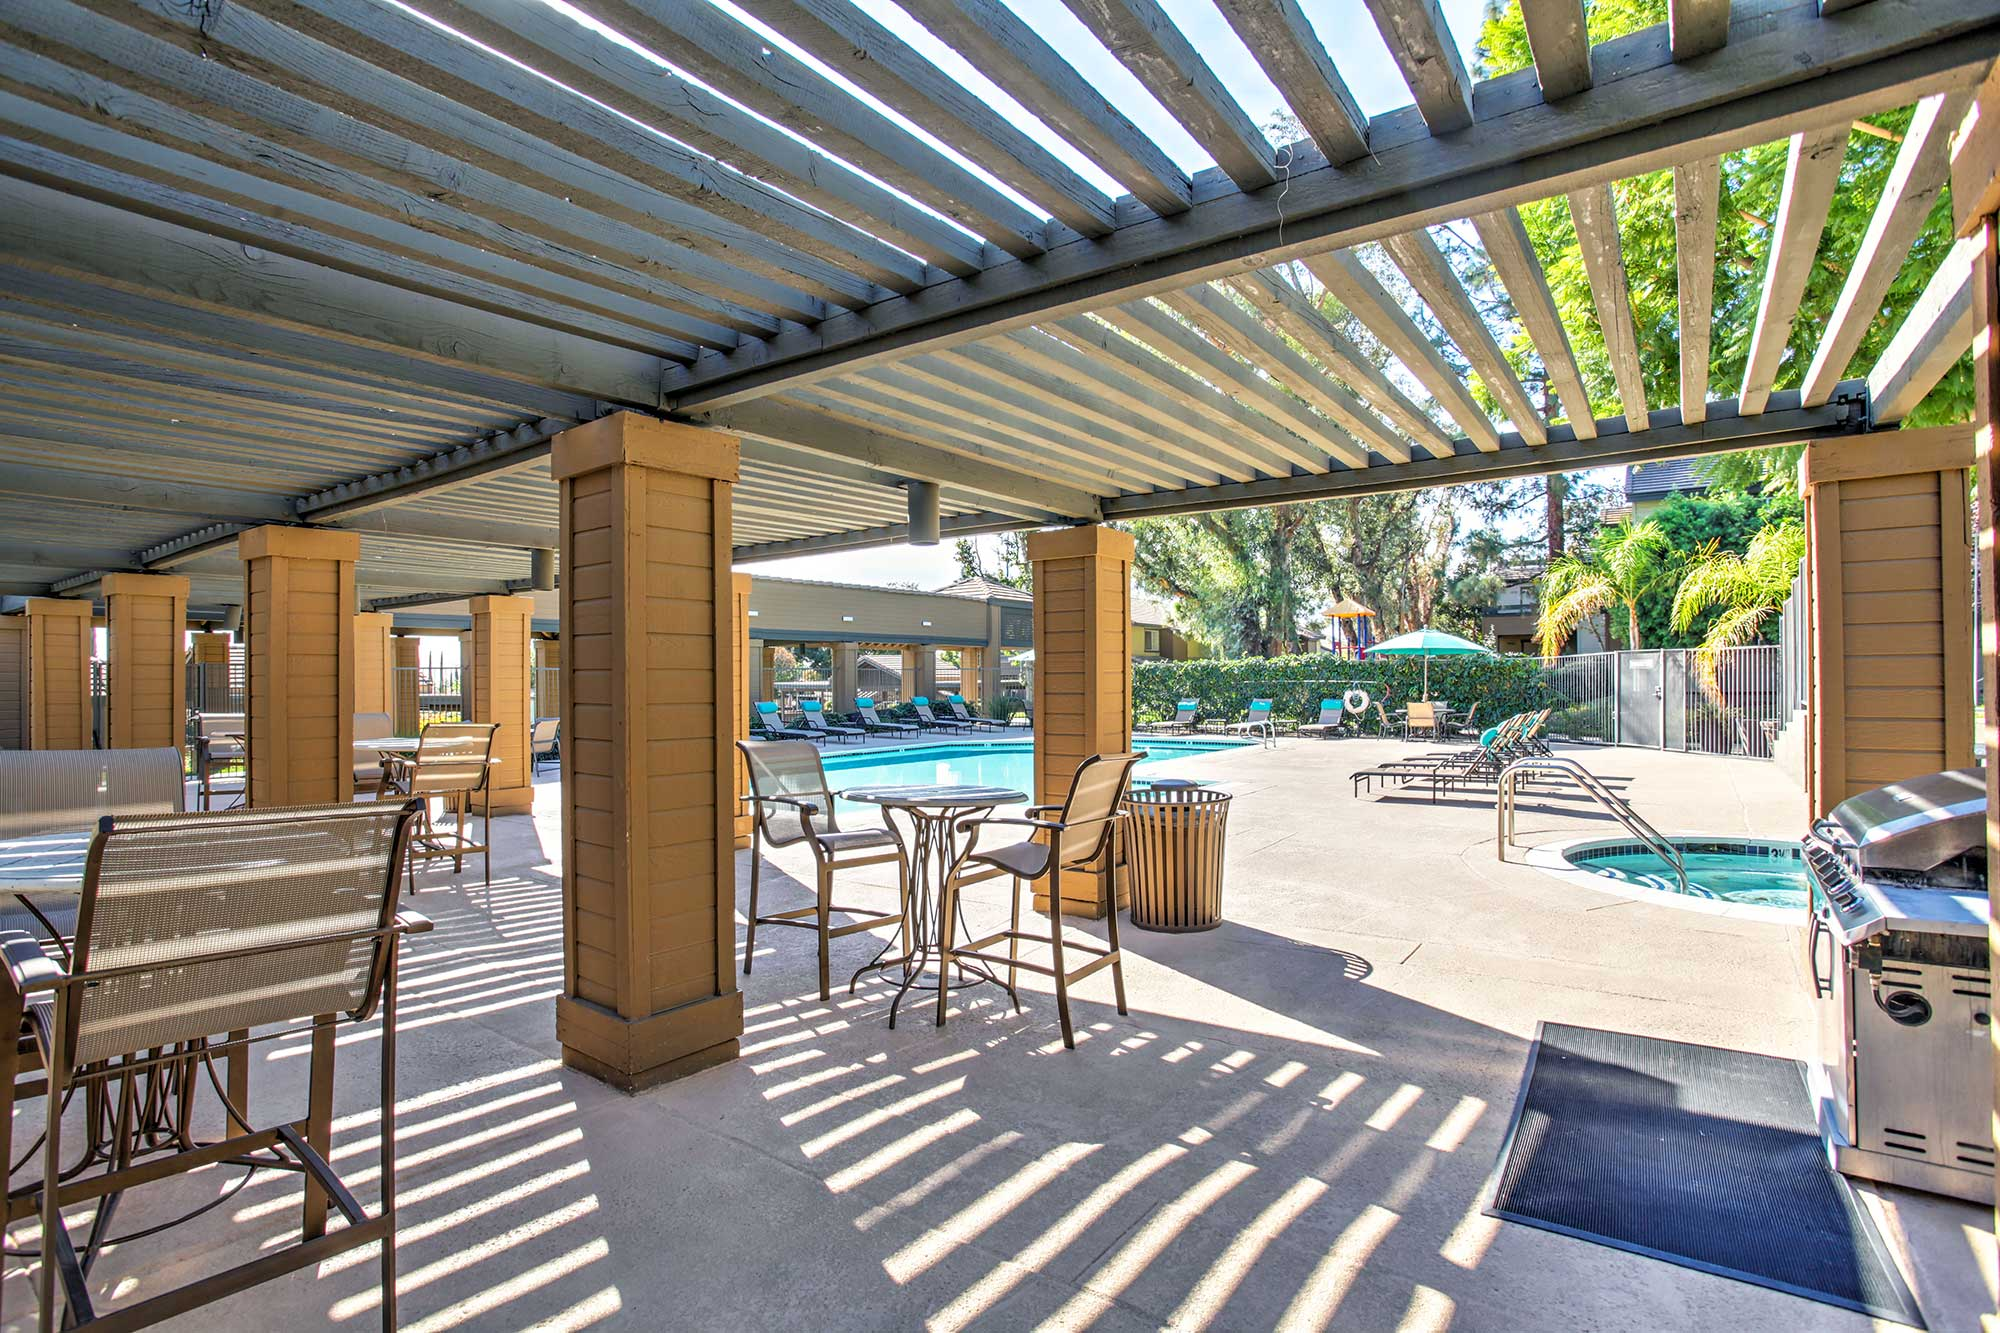 Waterstone Alta Loma Apartments community pool and lounge area with barbecue